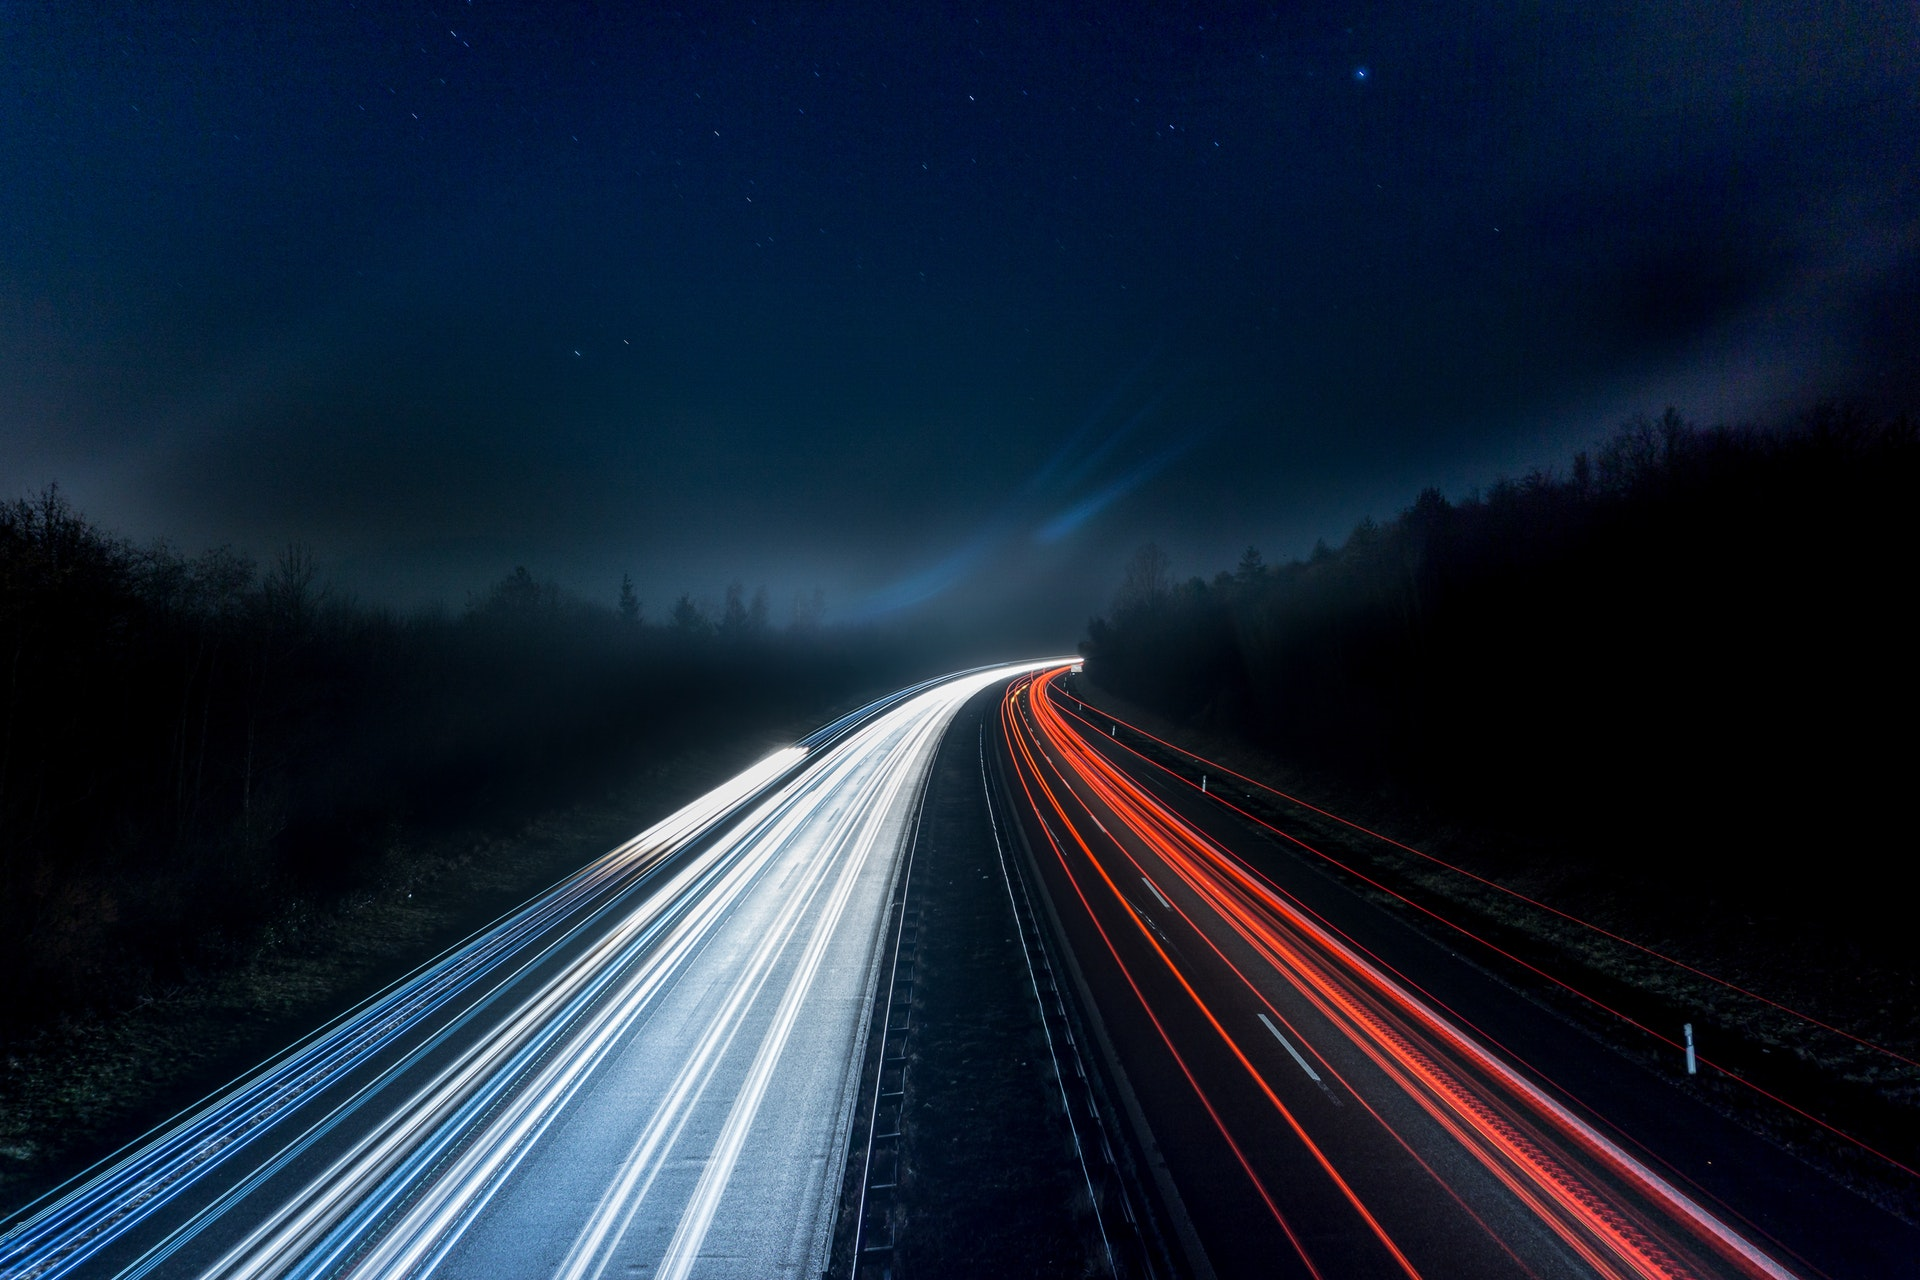 light-trails-on-highway-at-night-315938